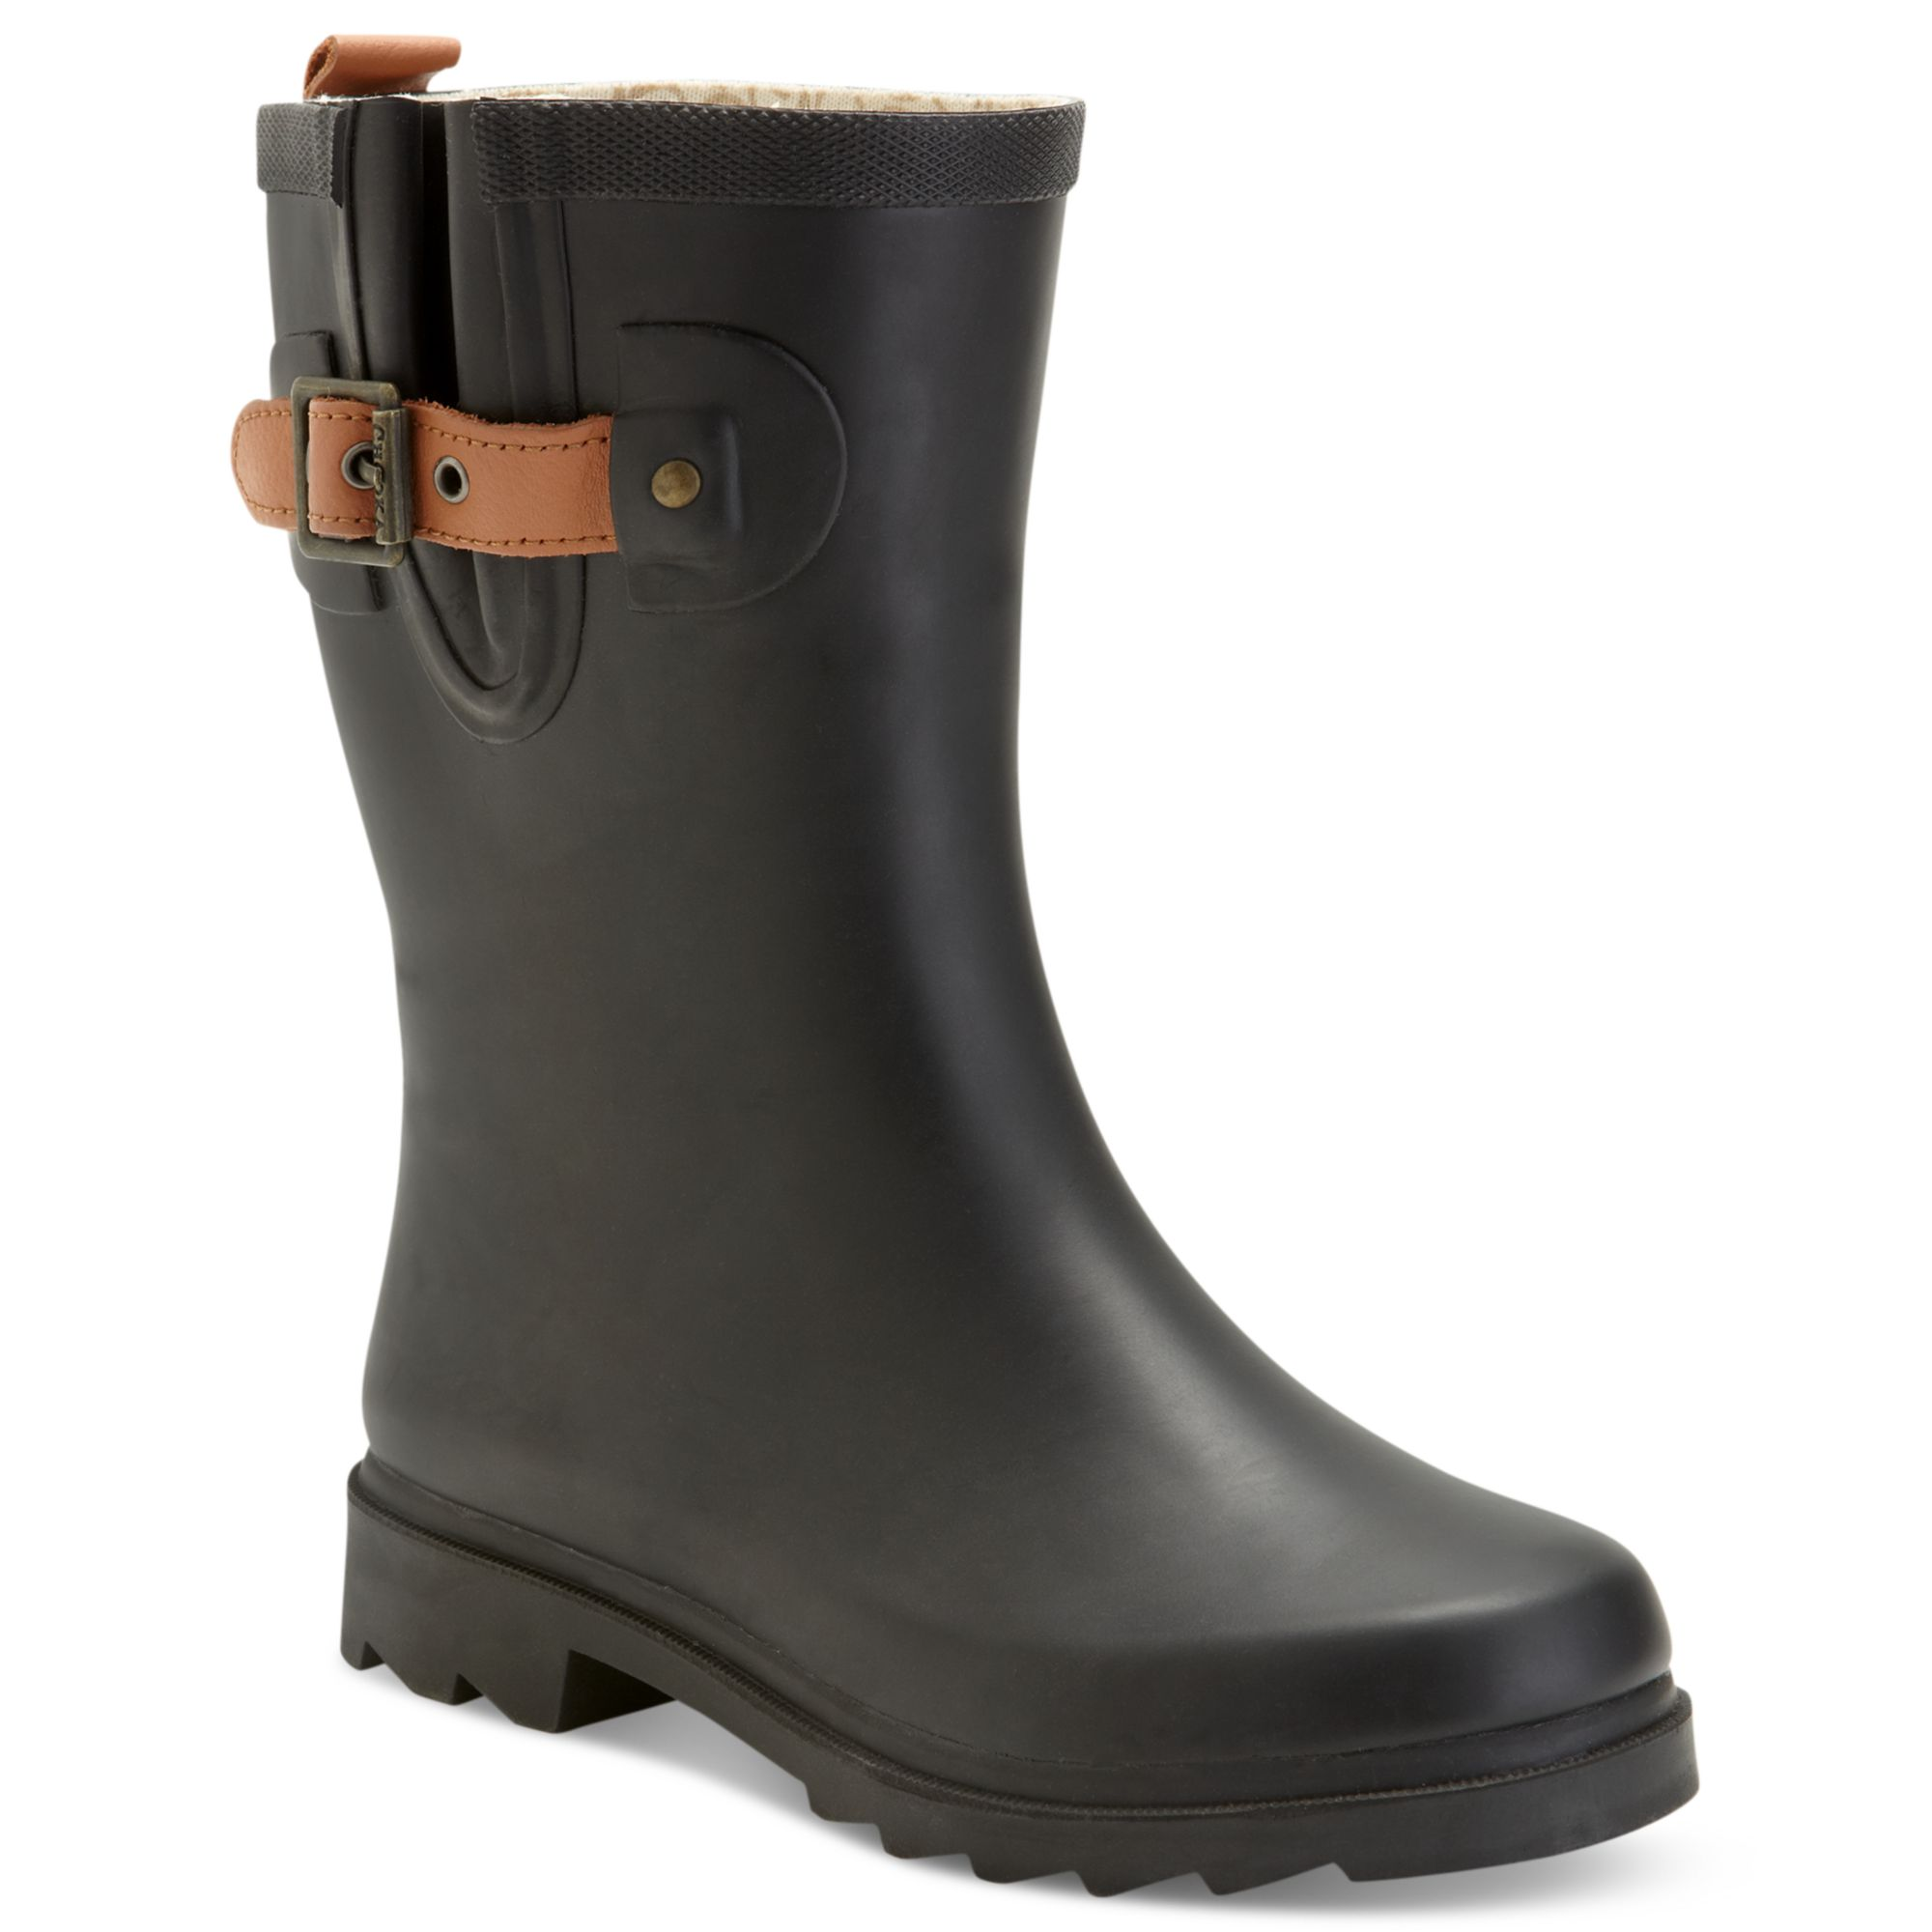 Free shipping & returns on weatherproof boots at mpupload.ga Find a great selection of snow & cold weather boots from top brands including Sorel, UGG, La Canadienne and more.